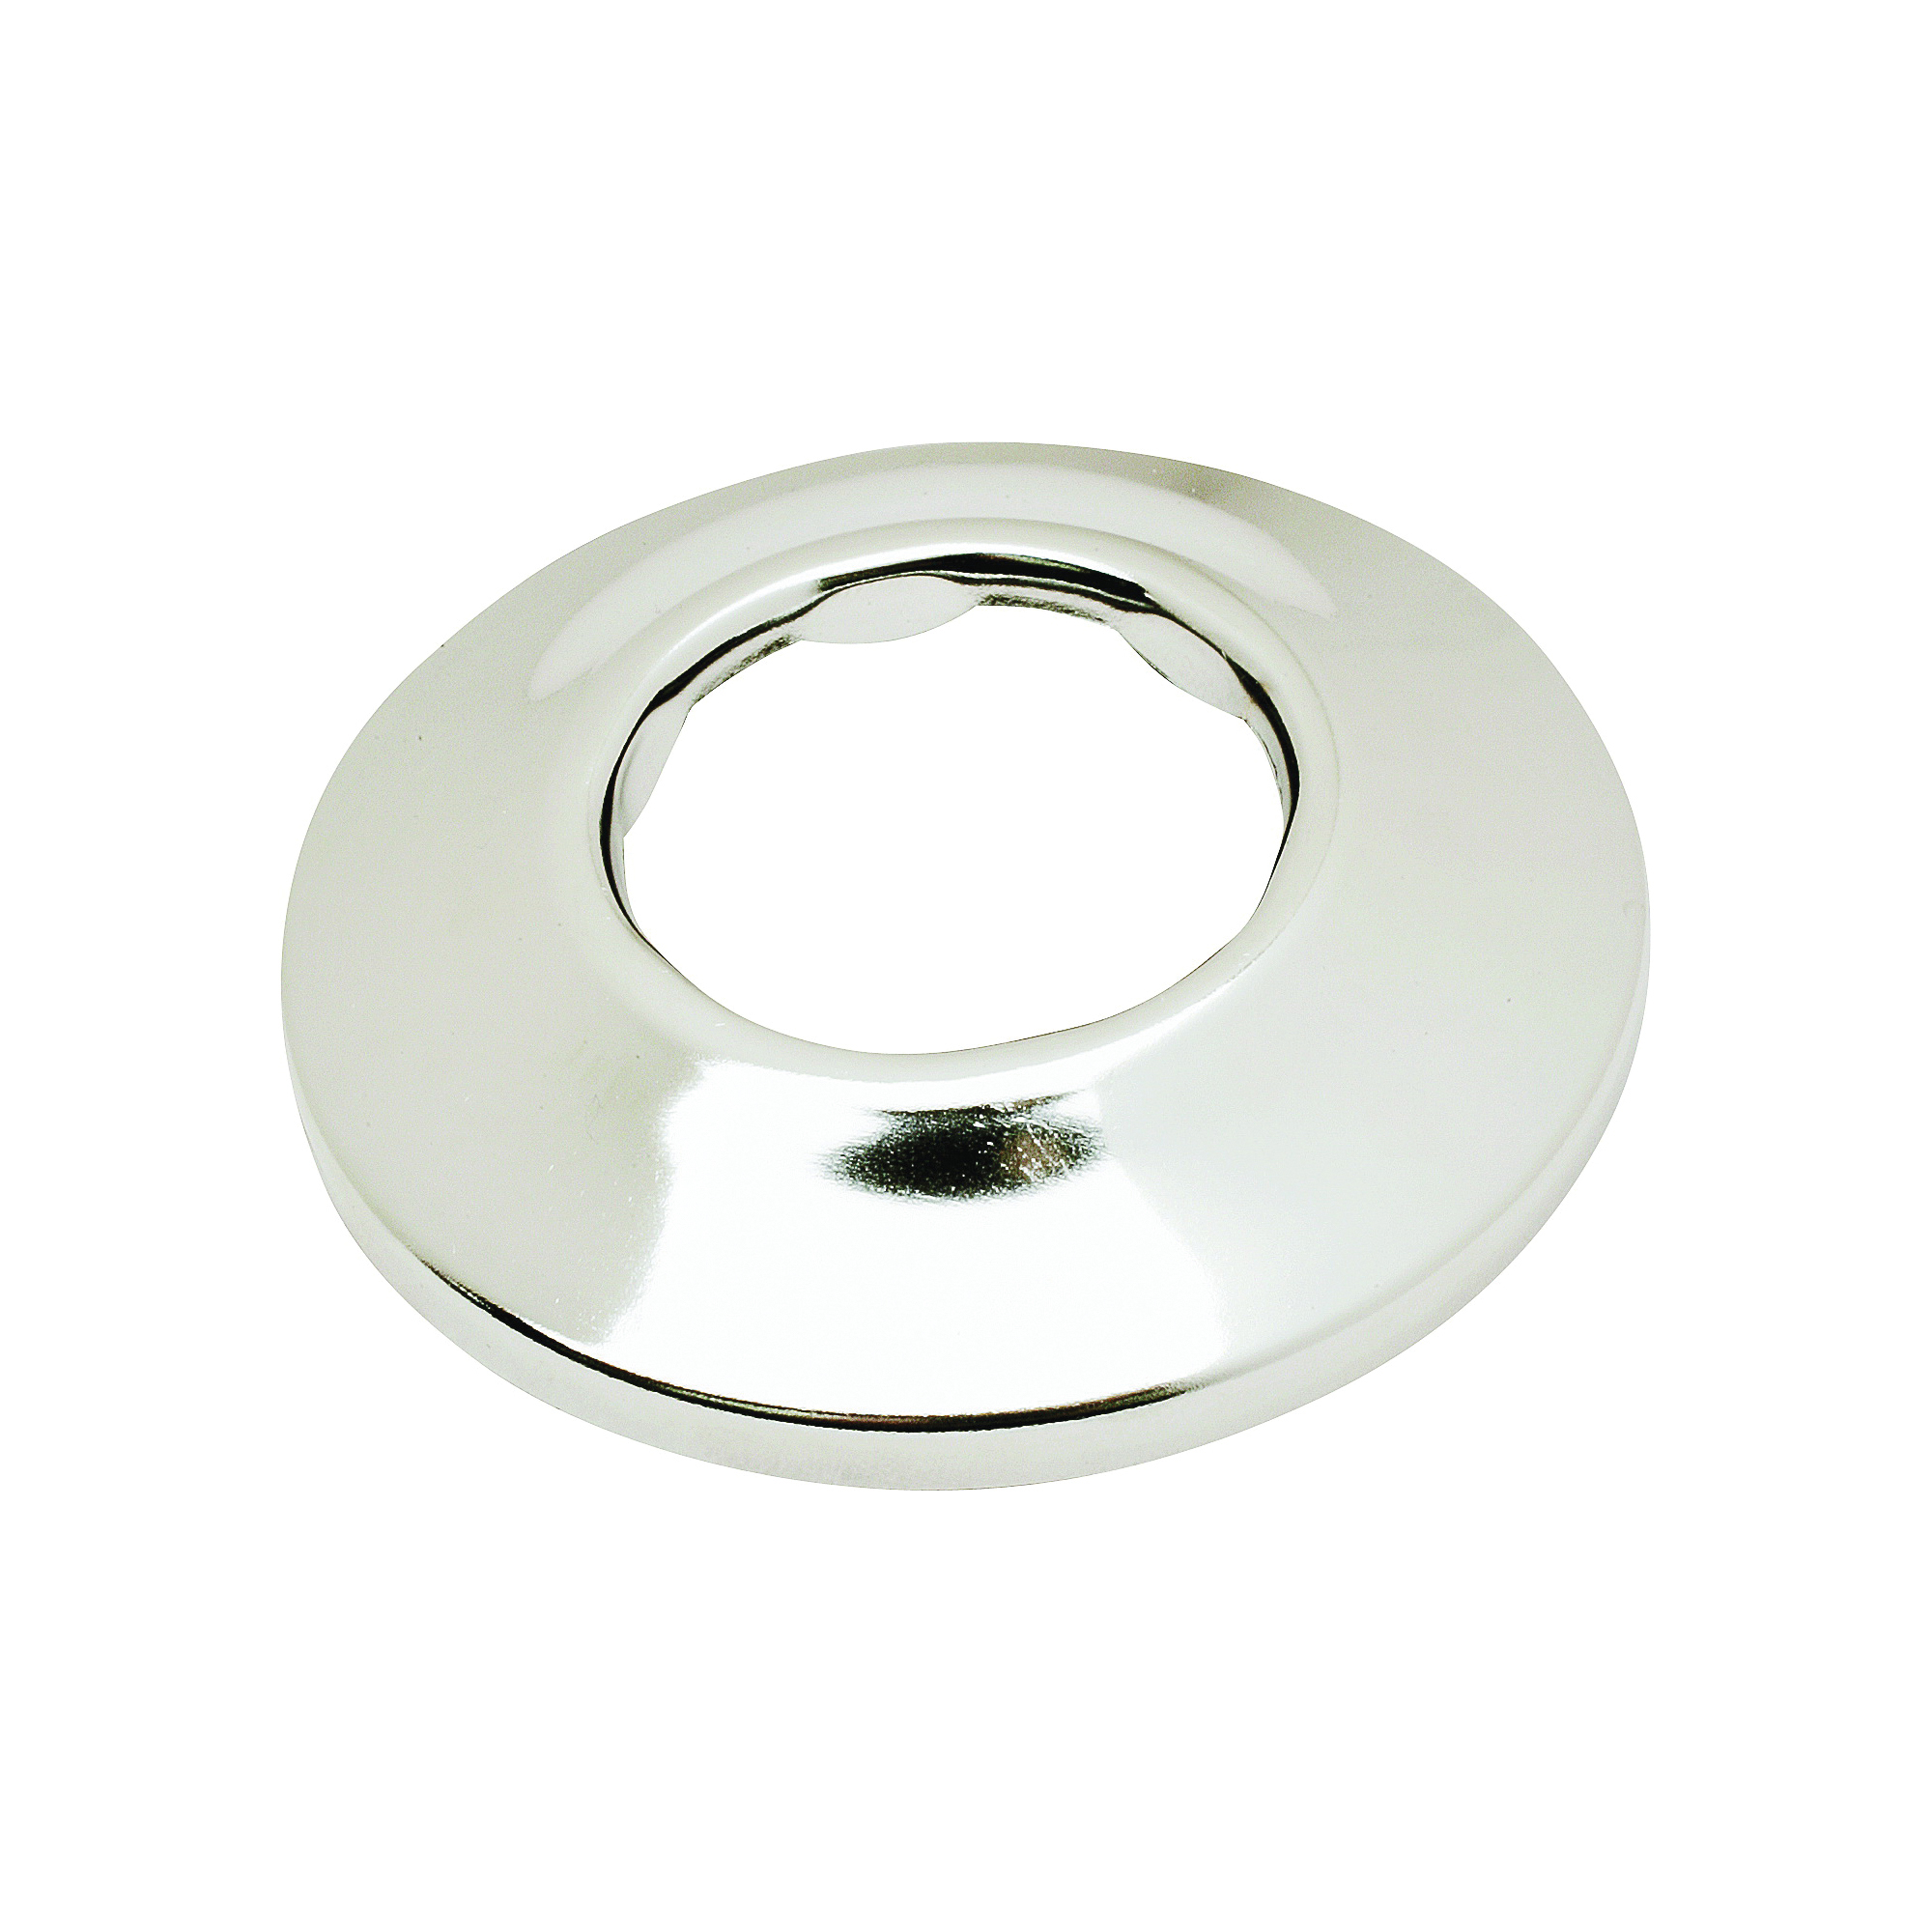 Picture of Plumb Pak PP97PC Bath Flange, 1-1/4 in Dia, 3-3/4 in W, Chrome